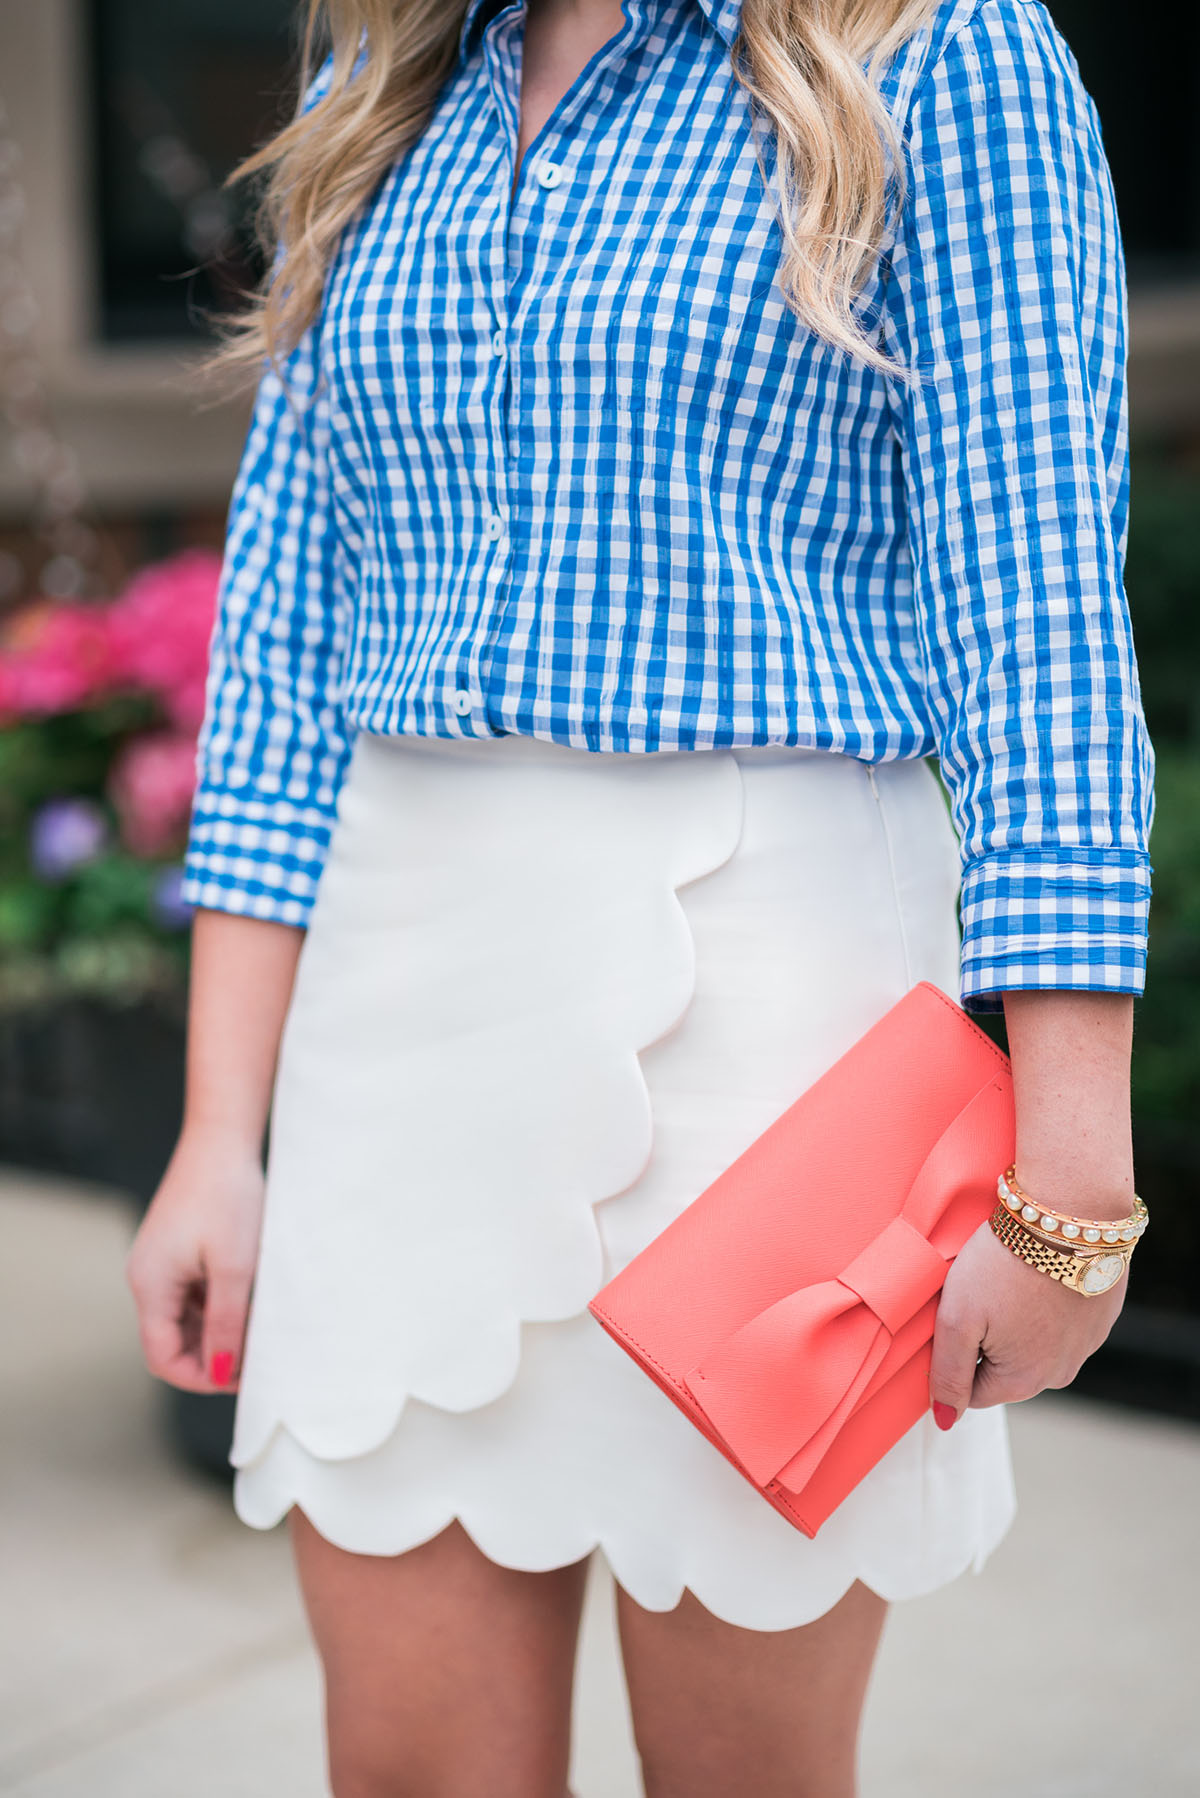 foxcroft blue gingham shirt, nordstrom white scalloped skirt, kate spade coral bow clutch